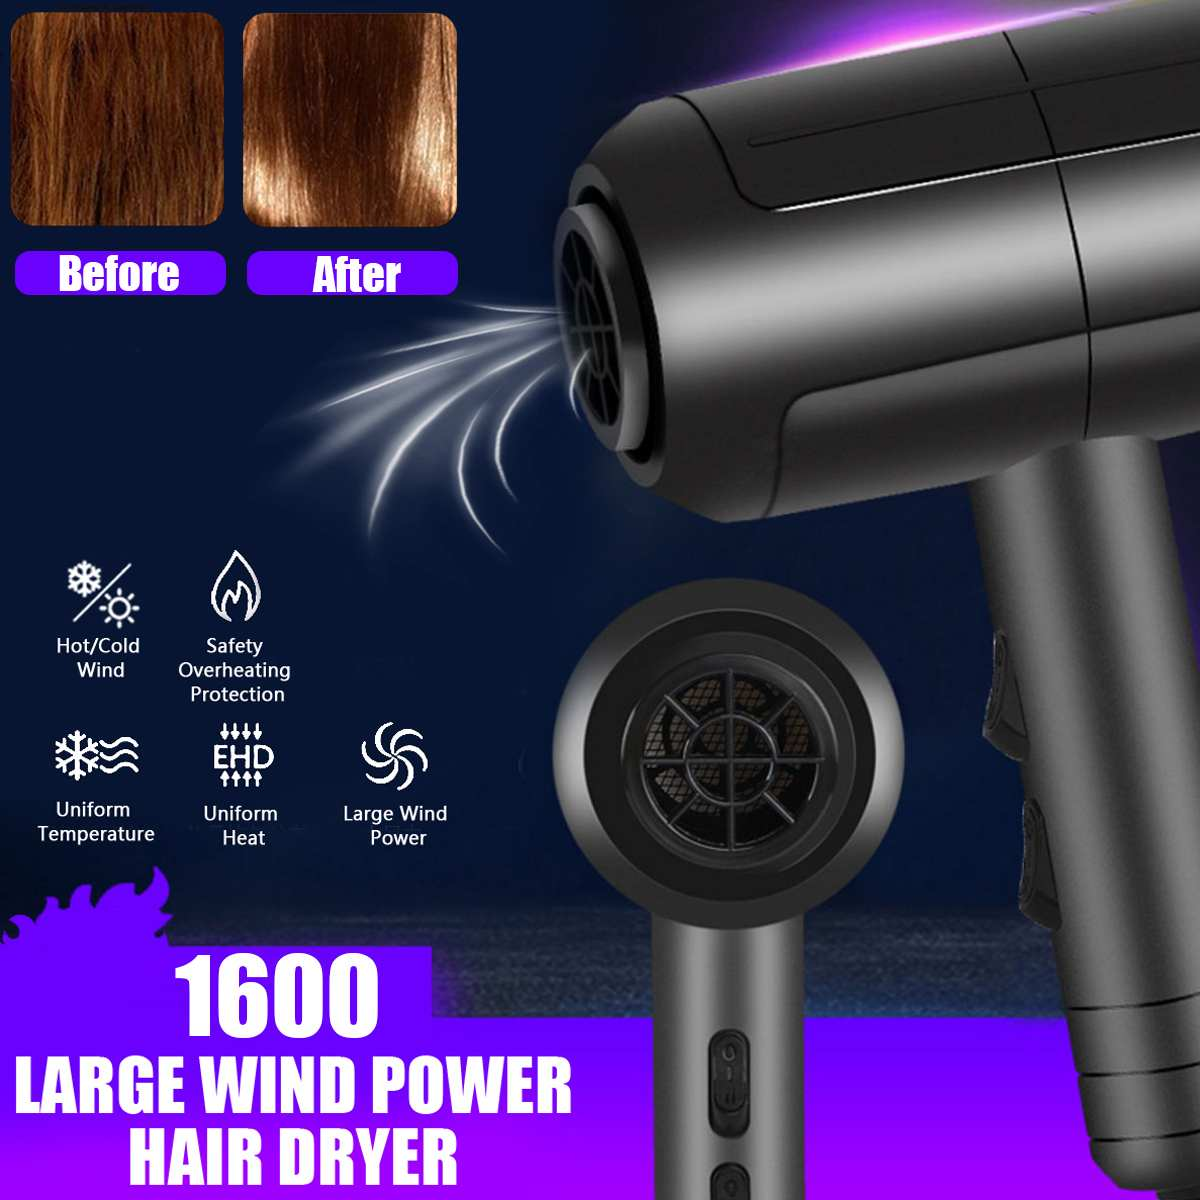 1600W Professional Hair Dryers Adjustable 3 Speed Electric Salon Tools Hair Blow Dryer Hairdressing Barbershop Hairdryer 220V1600W Professional Hair Dryers Adjustable 3 Speed Electric Salon Tools Hair Blow Dryer Hairdressing Barbershop Hairdryer 220V